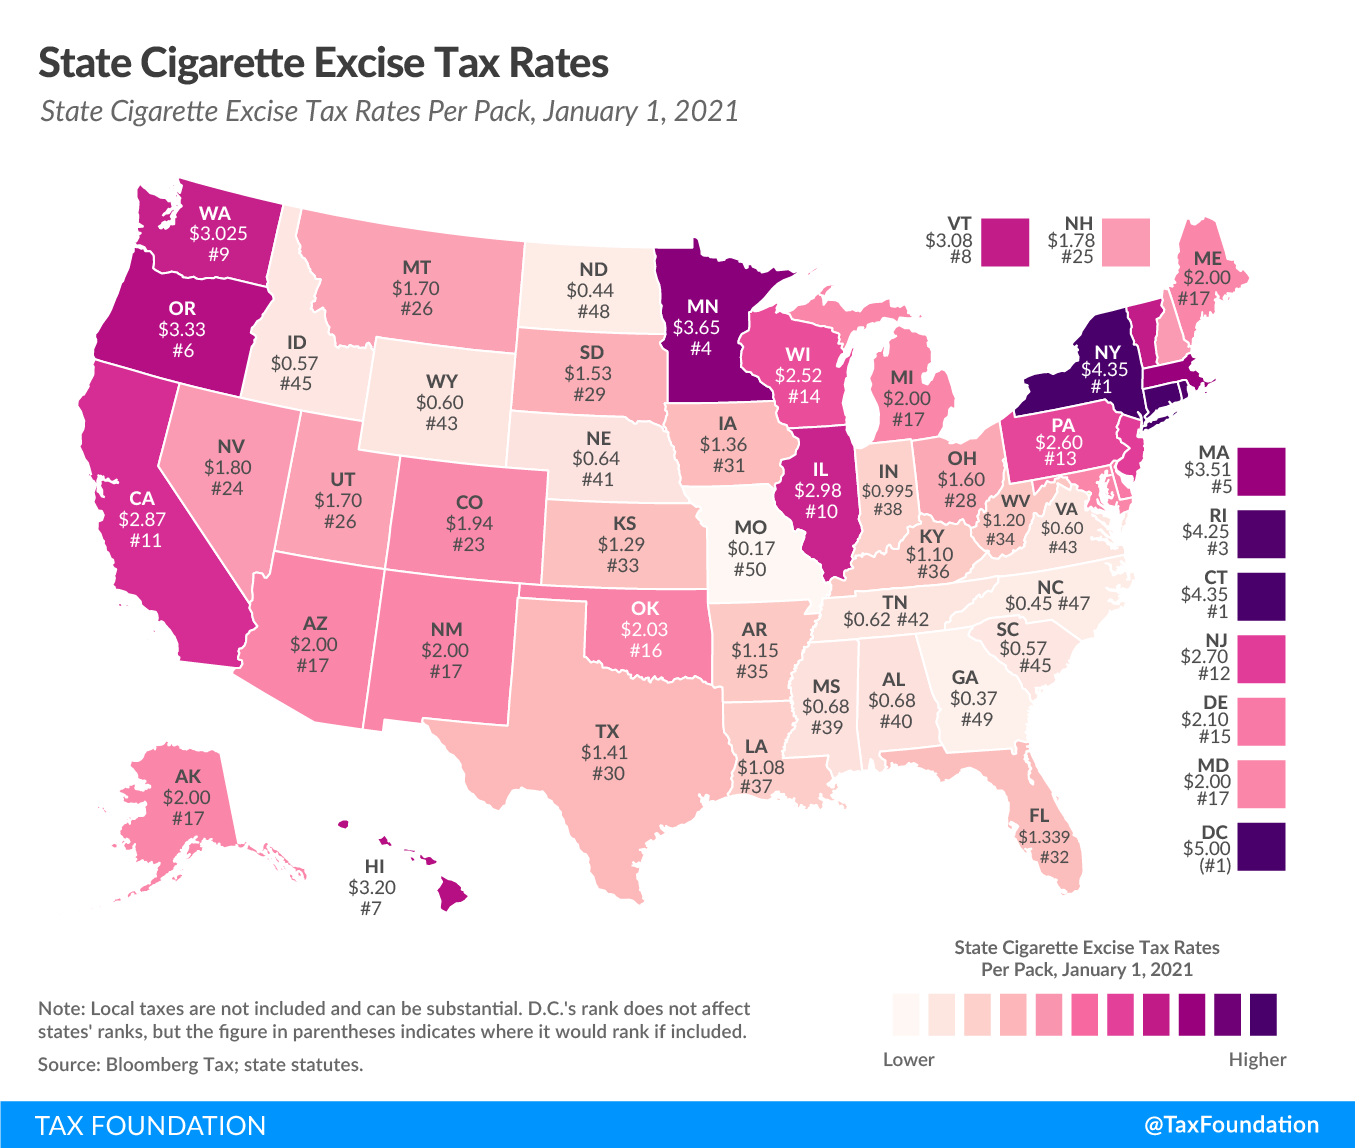 2021 state cigarette tax rates, 2021 state tobacco tax rates, 2021 excise taxes and 2021 excise tax trends